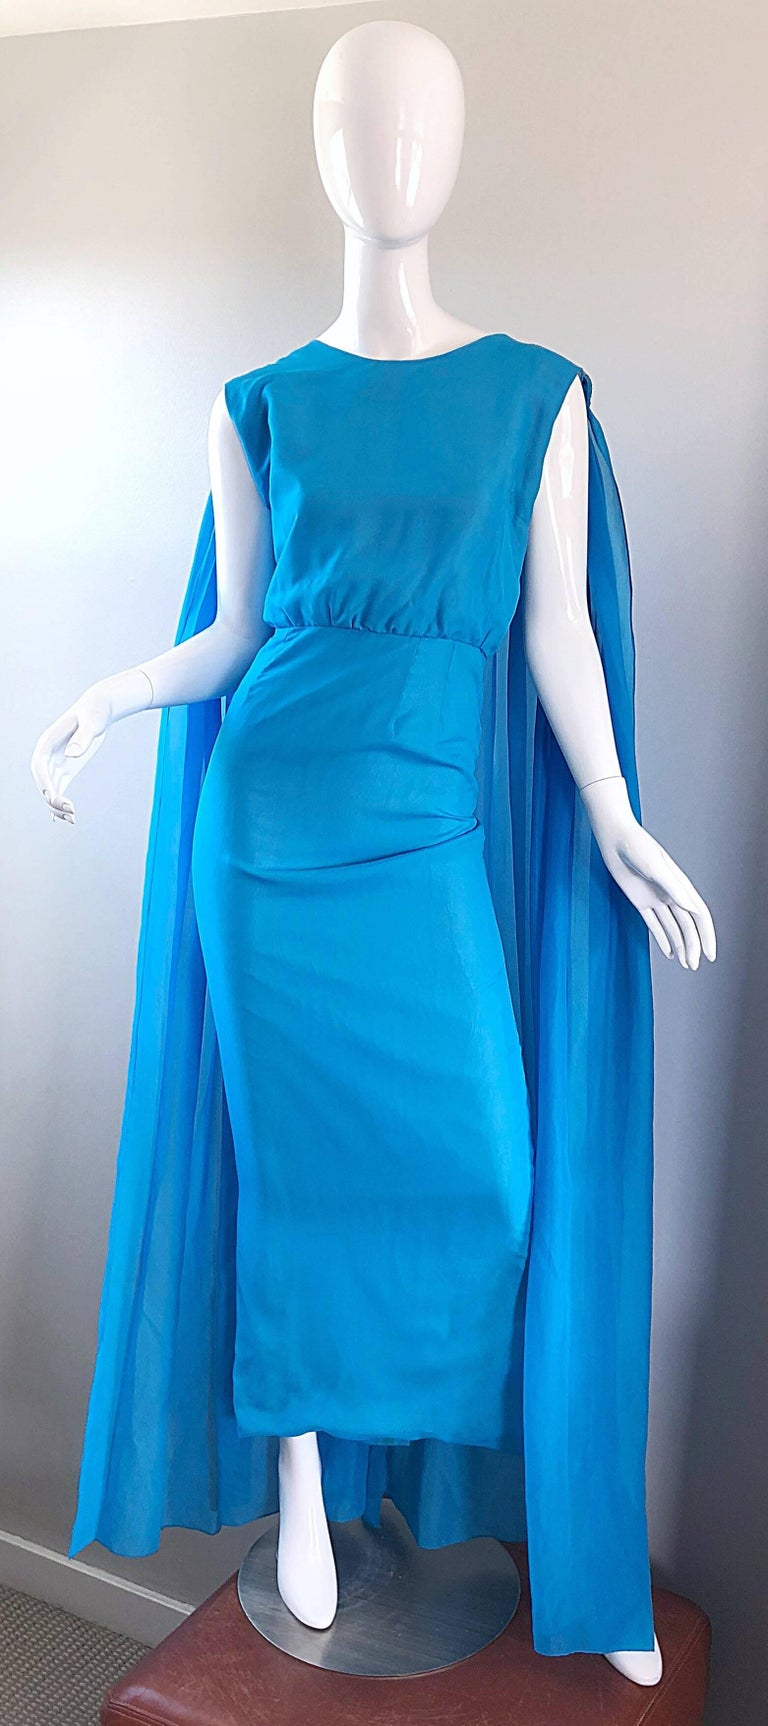 Incredible 1960s Turquoise Blue Chiffon Rhinestone Encrusted Vintage Cape Gown For Sale 9